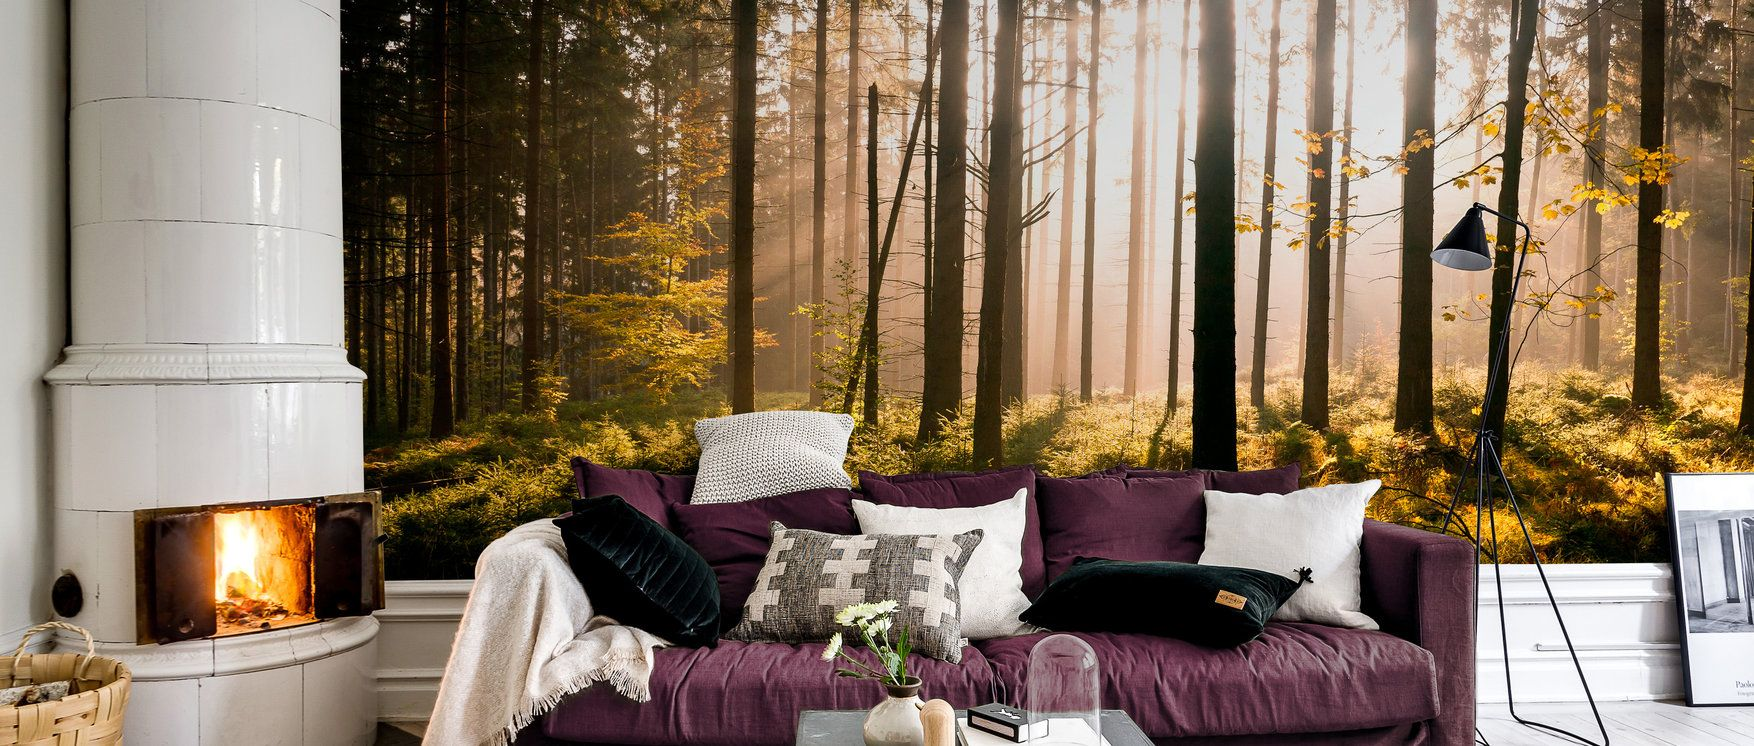 Fall Forest with Sunrays – affordable wall mural – Photowall